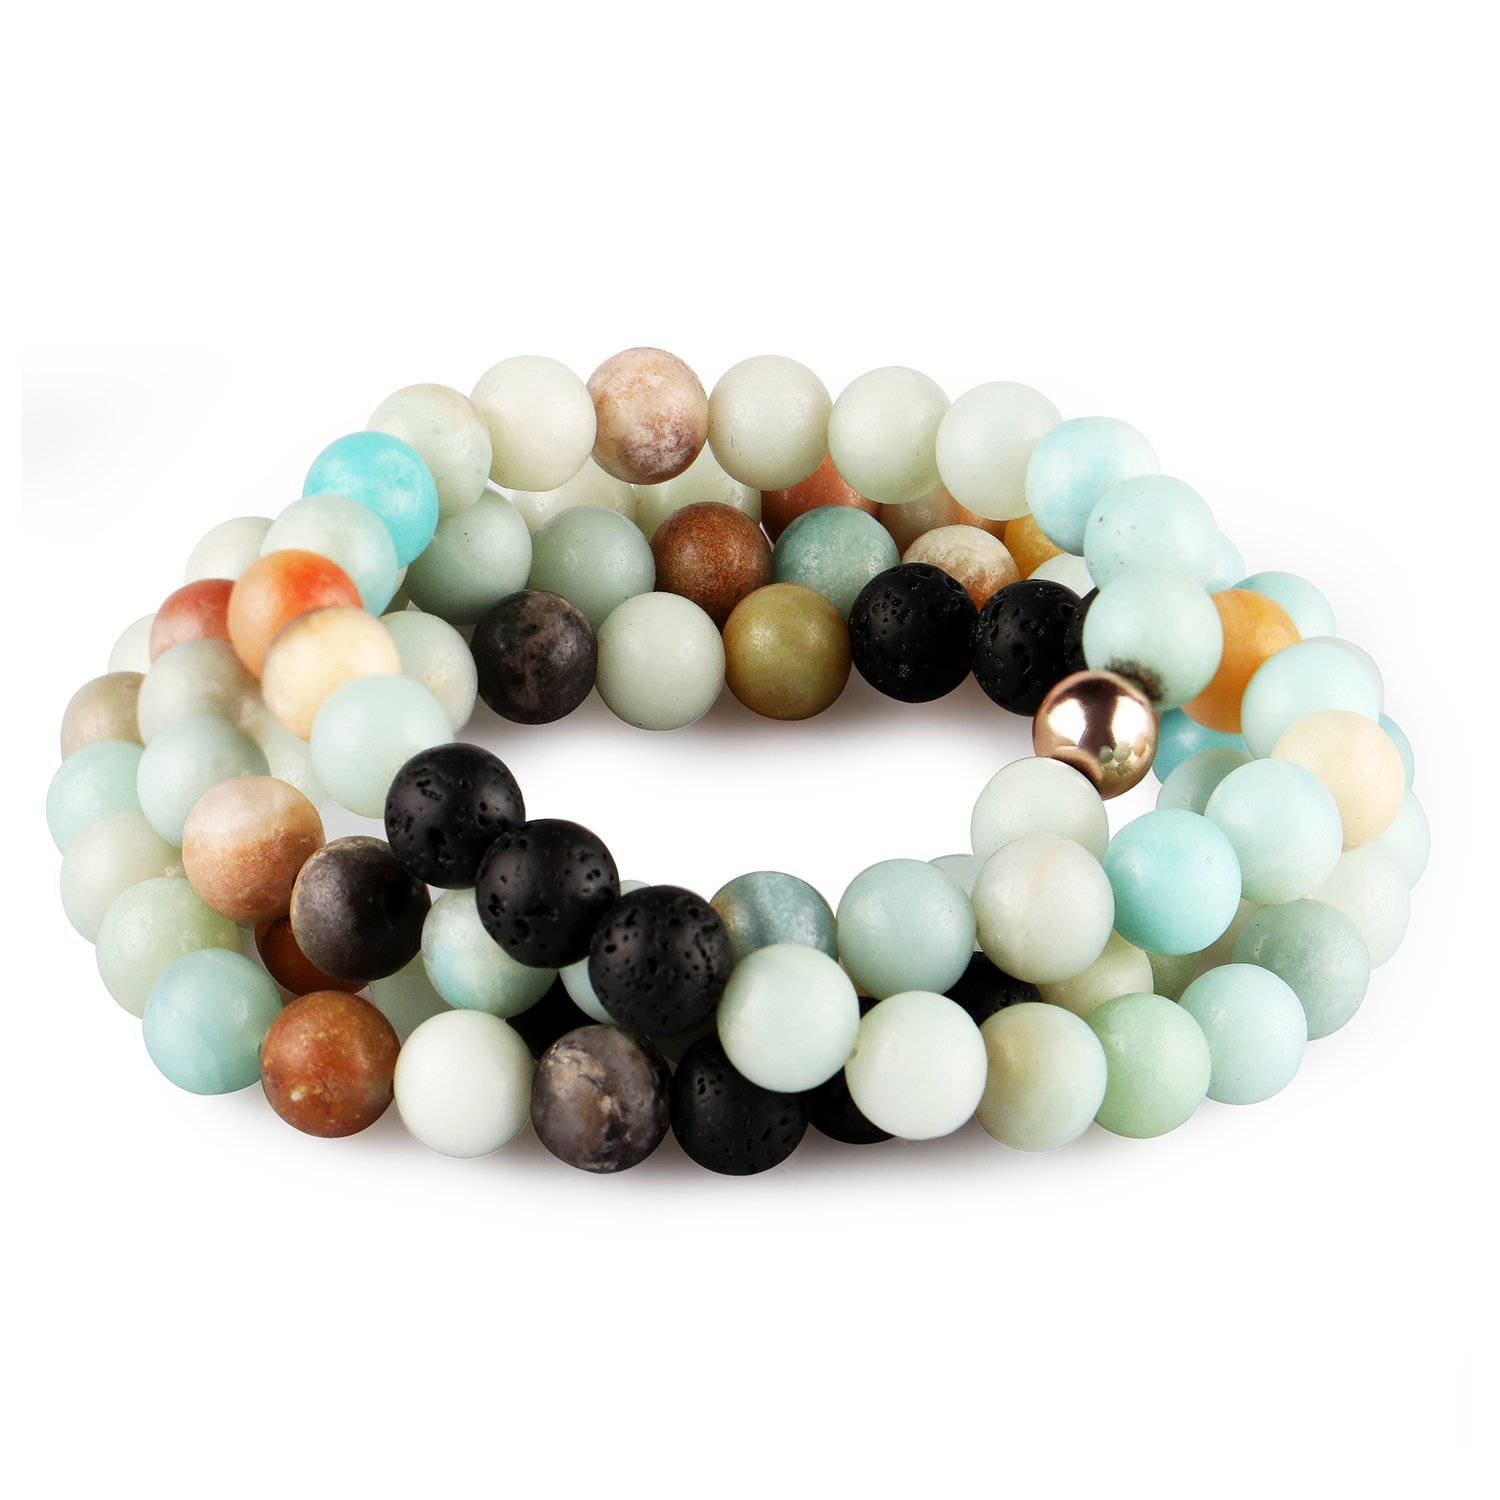 VAMEI Amazonite Bracelet Necklace Chakra Essential Oil Diffuser Aromatherapy Bracelet Handmade Natural Lava Stone Beads Necklace Bracelets Gifts for Girls Women